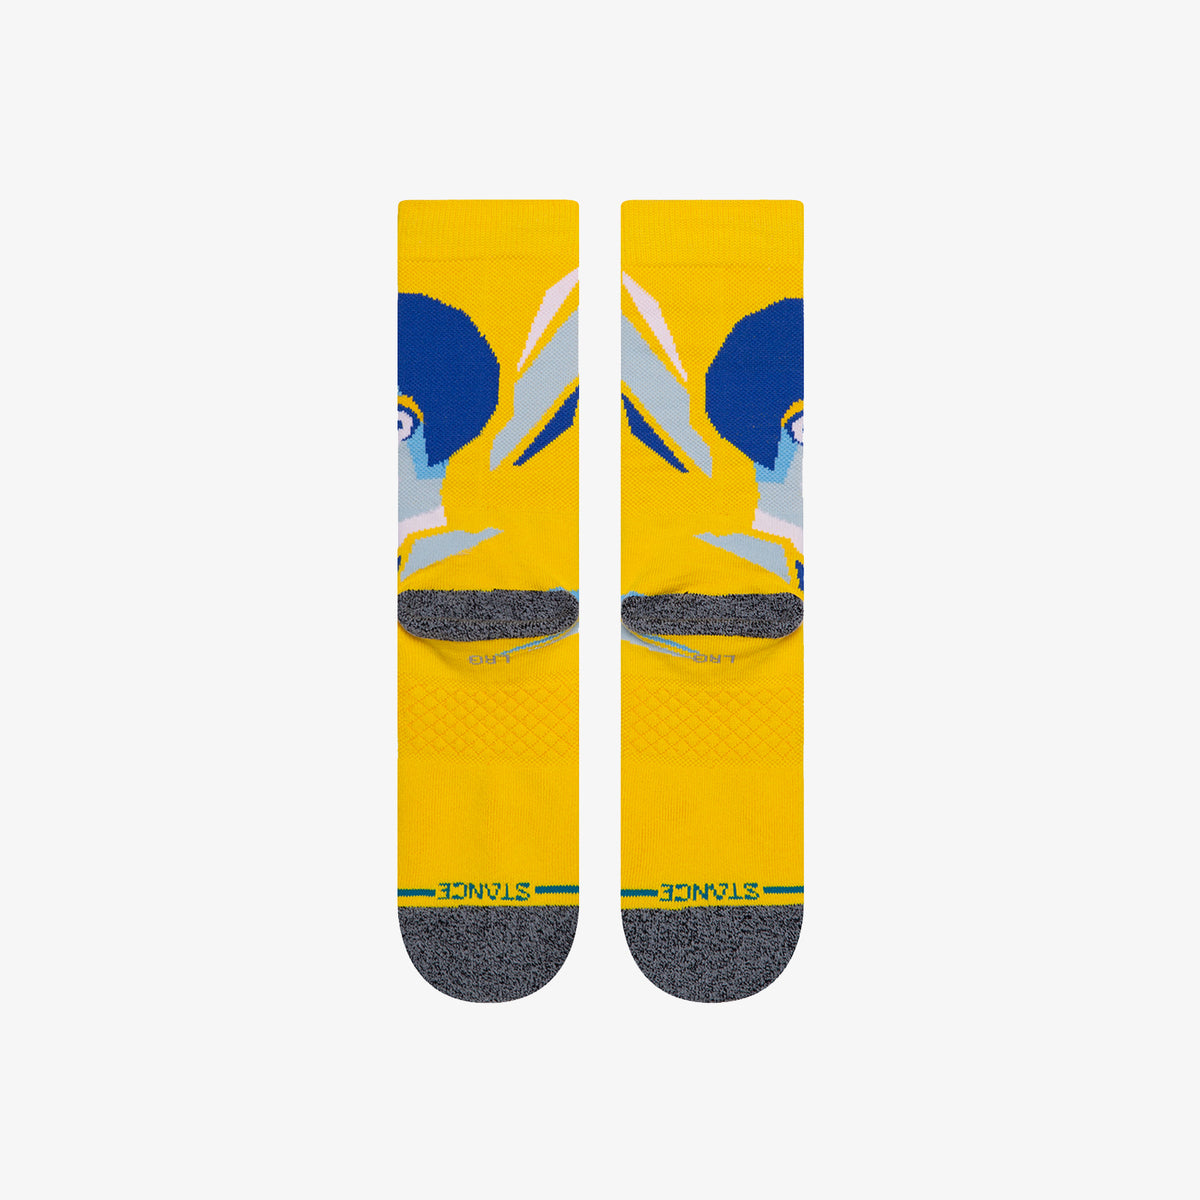 Stephen Curry Profiler Socks